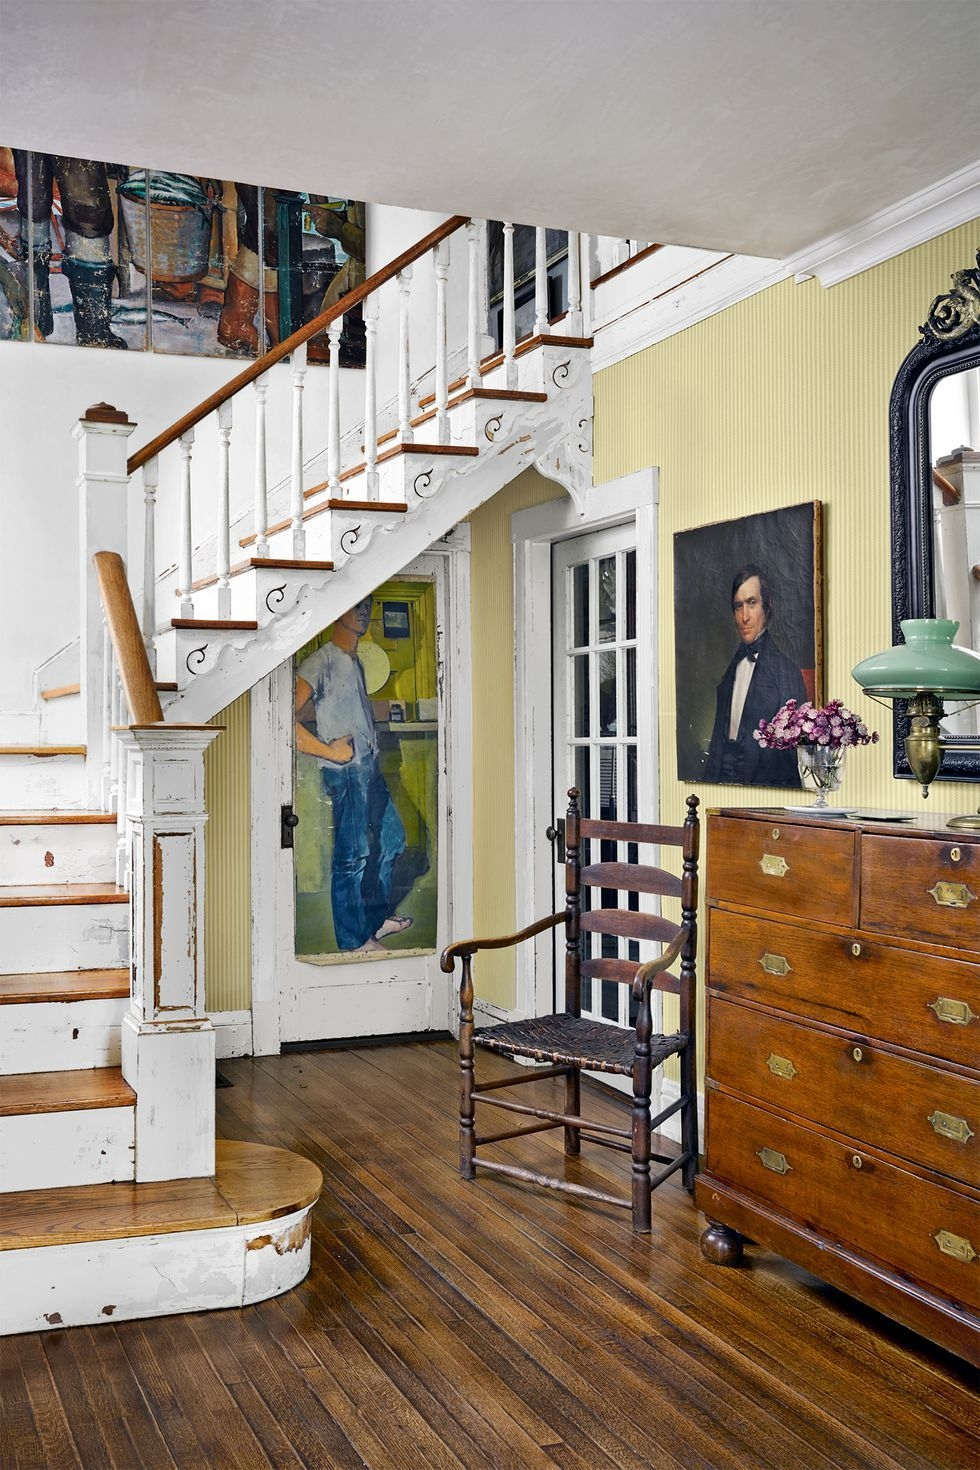 55 Best Staircase Ideas Top Ways To Decorate A Stairway   Simple House Stairs Design   Staircase Woodwork   Separated   Family House   Outside   Low Budget